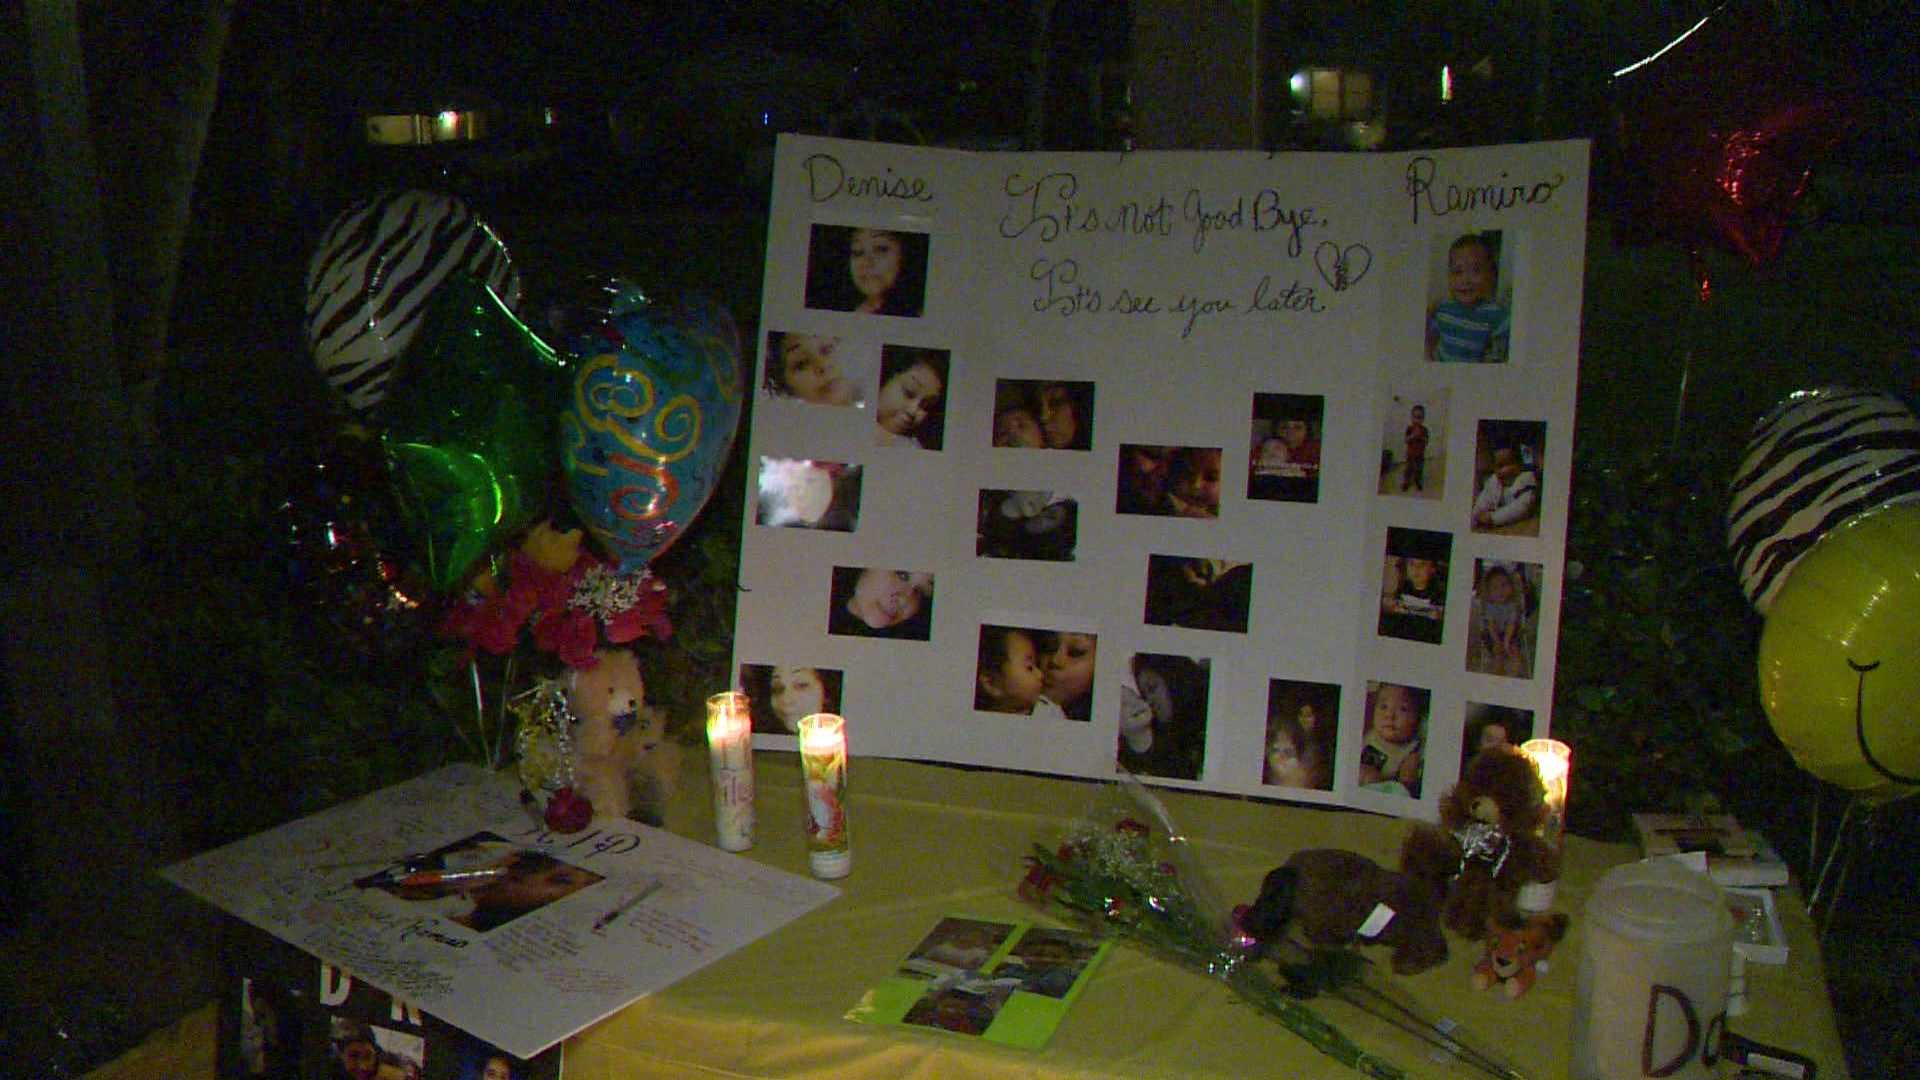 Family and friends remembered 19-year-old Denise Garcia and her 3-year-old son Ramiro at a vigil Tuesday, April 12, 2016.